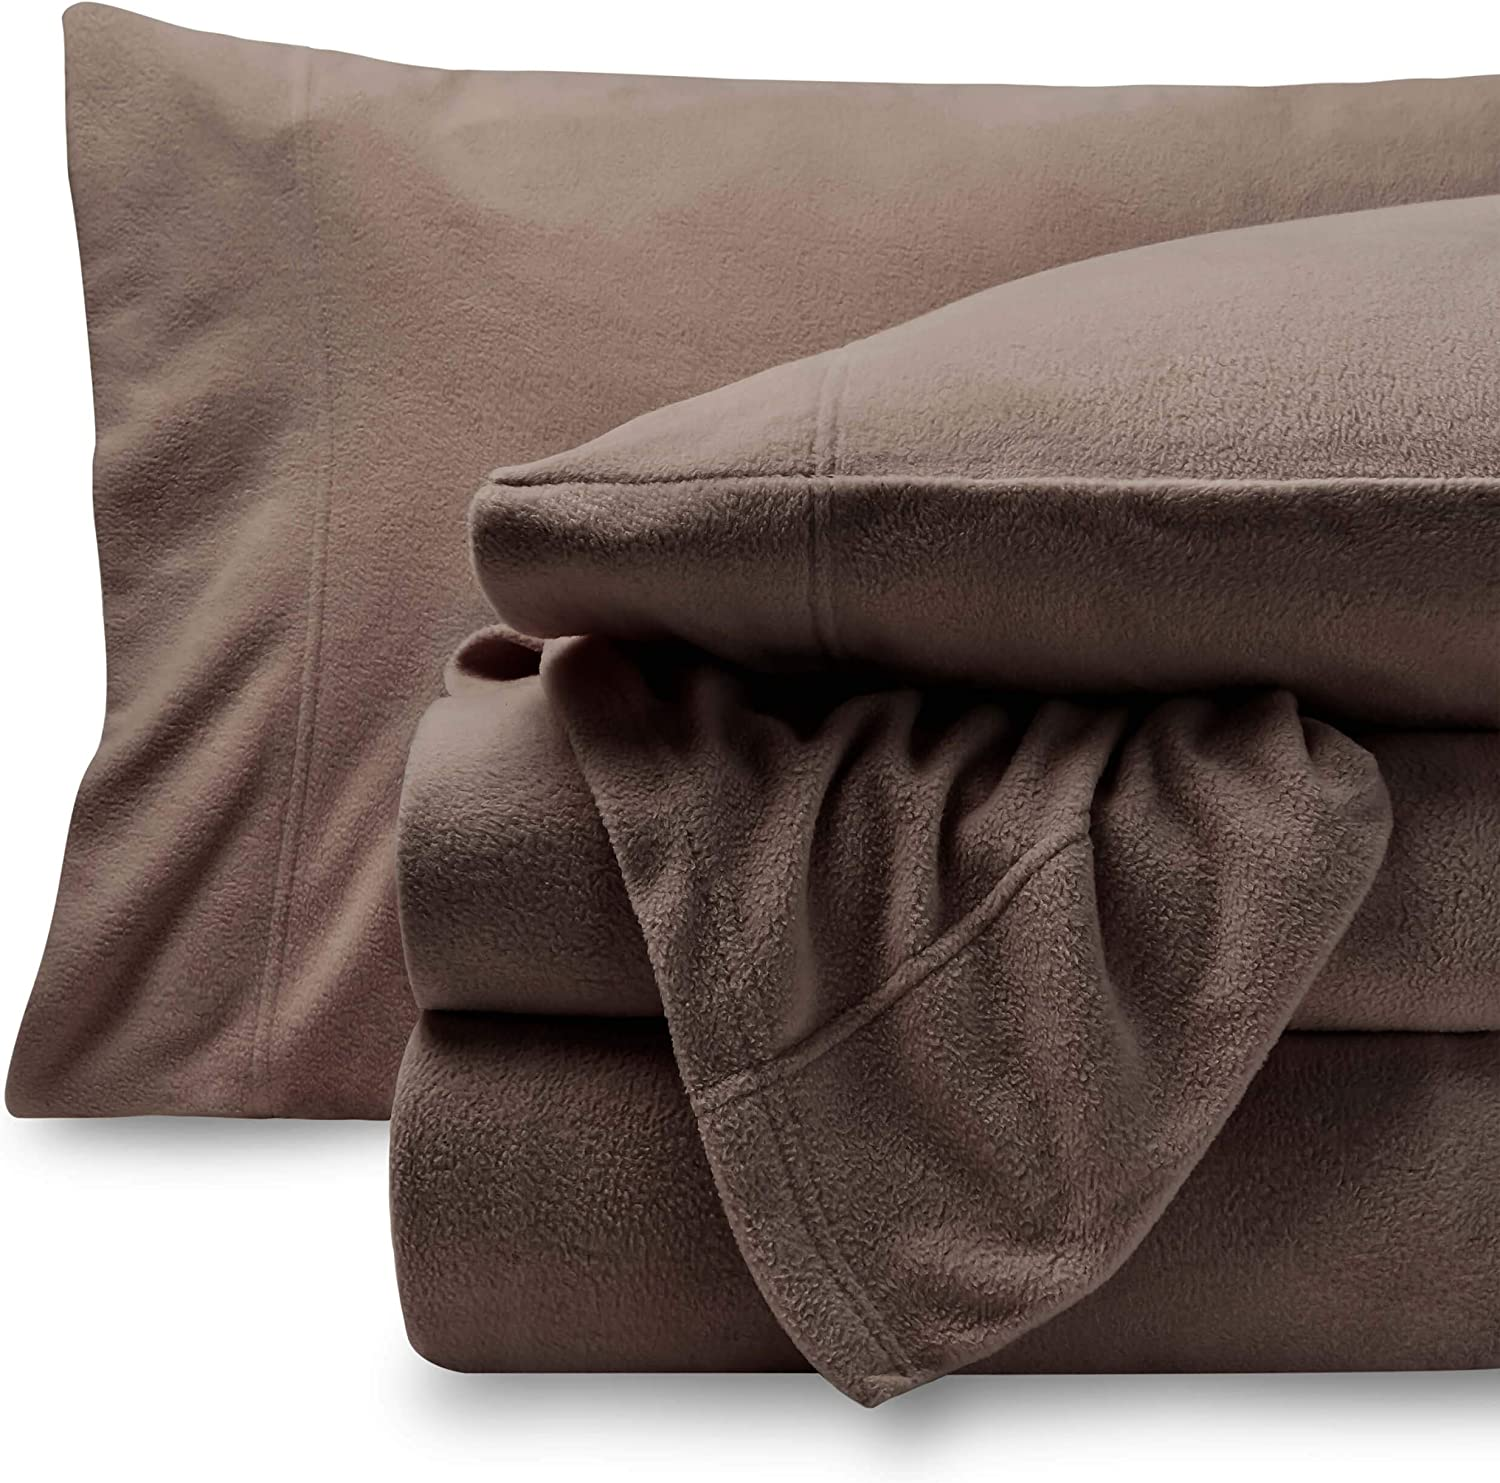 Bare Home Super Soft Fleece Sheet Set - Twin Extra Long Size - Extra Plush Polar Fleece, Pill-Resistant Bed Sheets - All Season Cozy Warmth, Breathable & Hypoallergenic (Twin XL, Taupe)